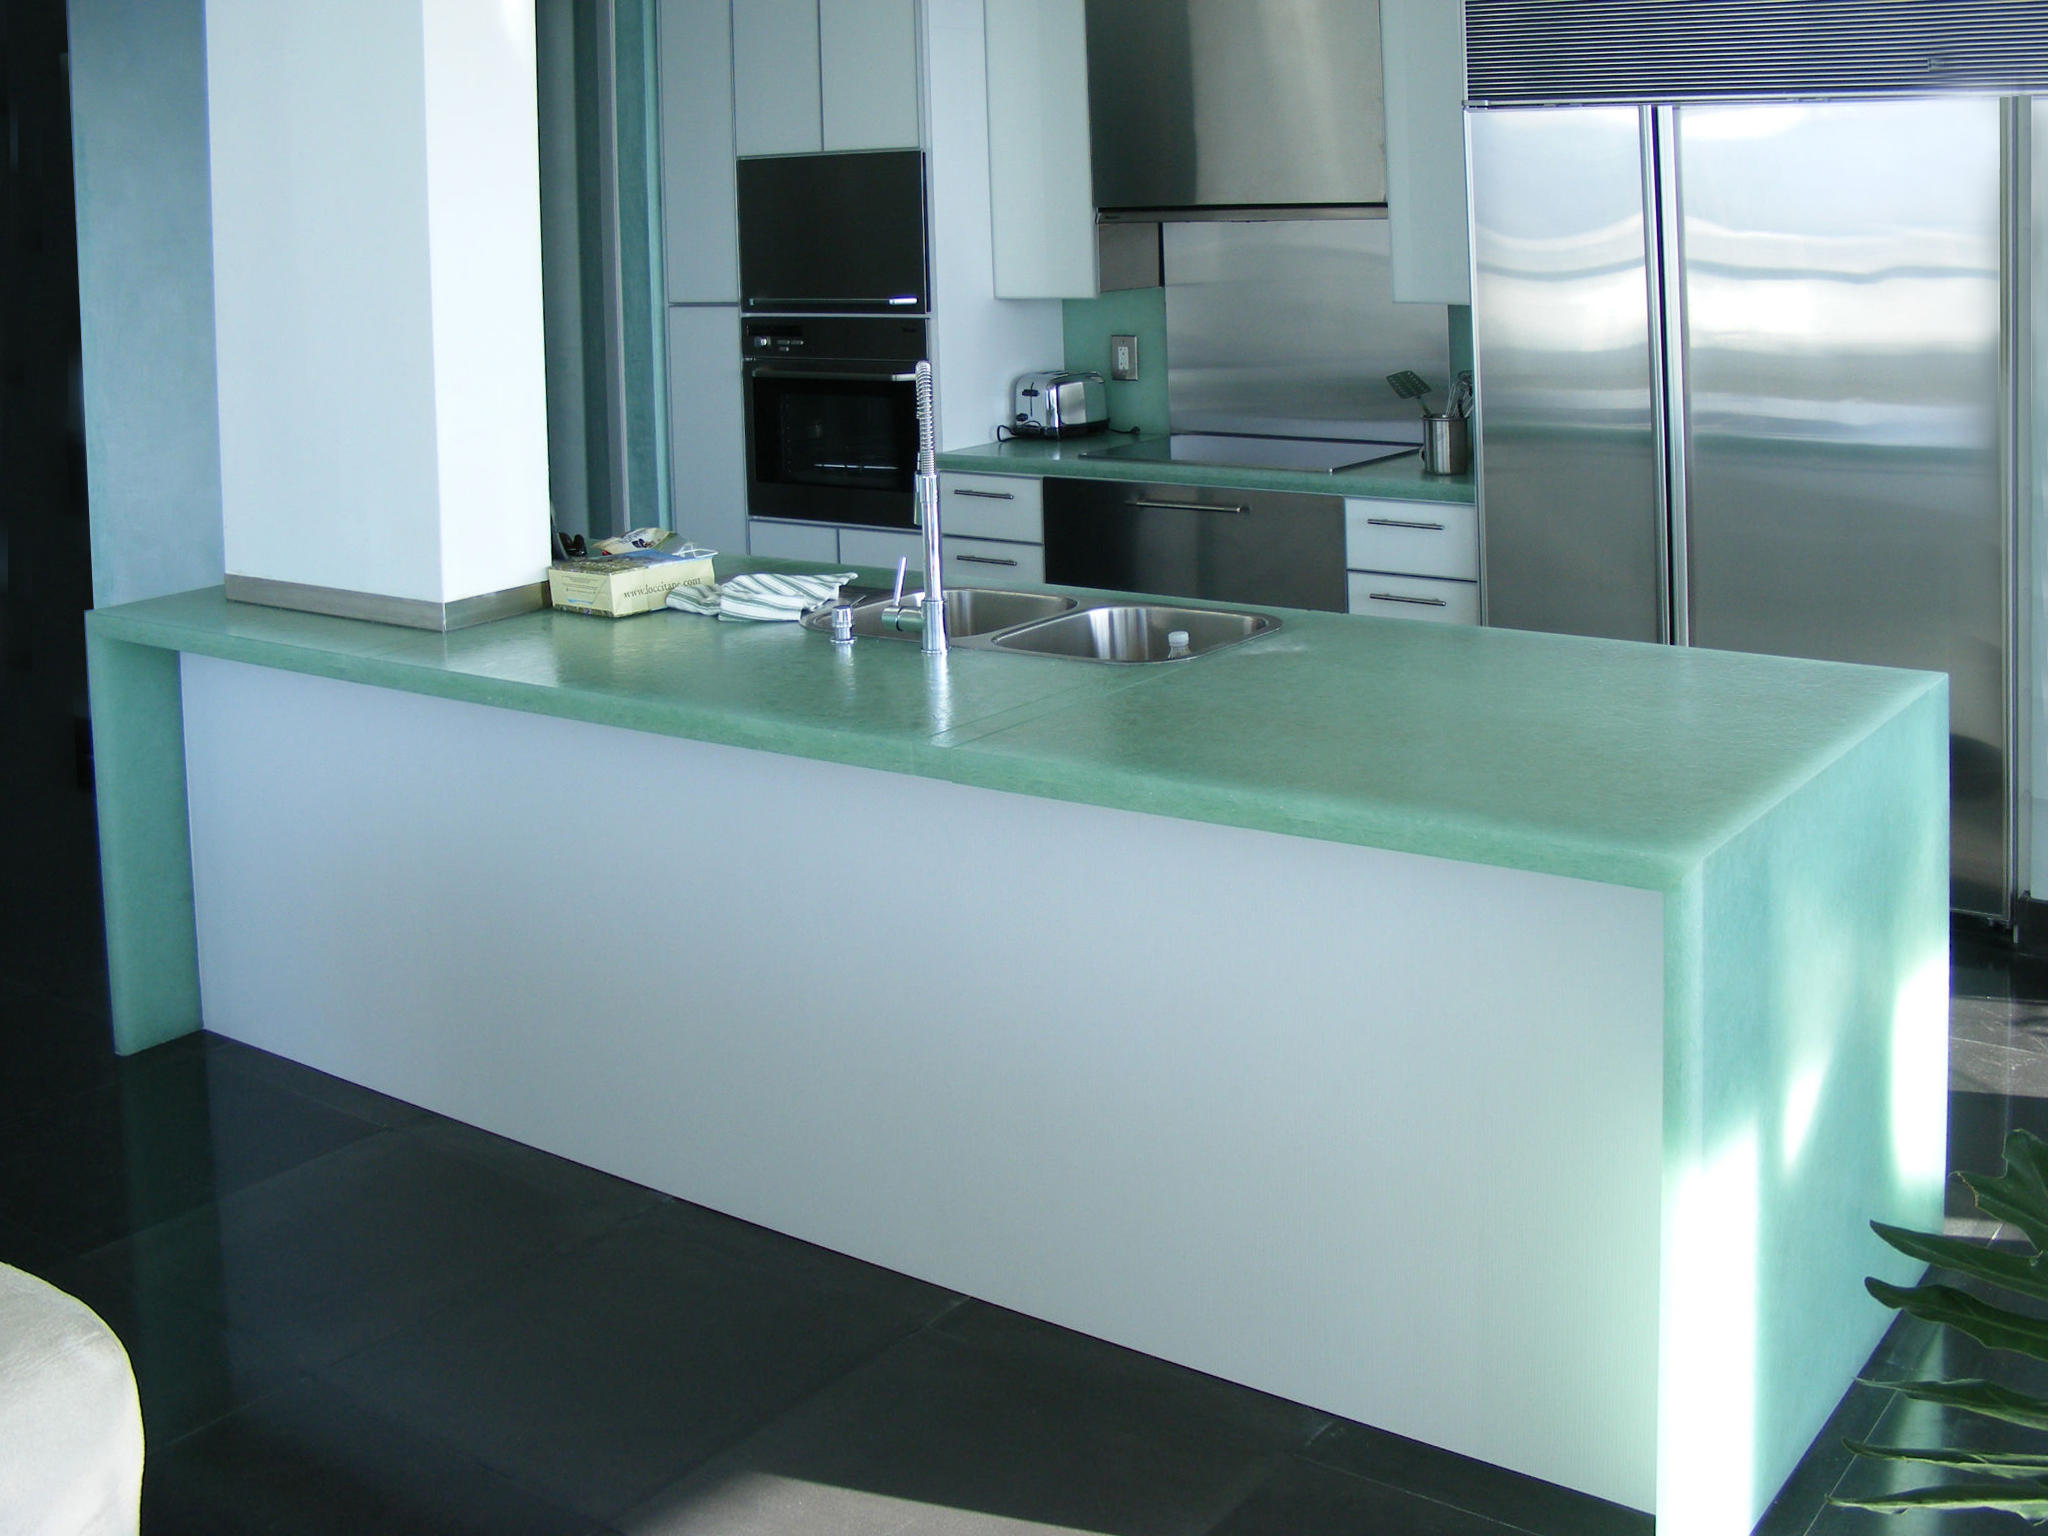 BIOGLASS WHITE DIAMOND  Decorative glass from COVERINGSETC  Architonic